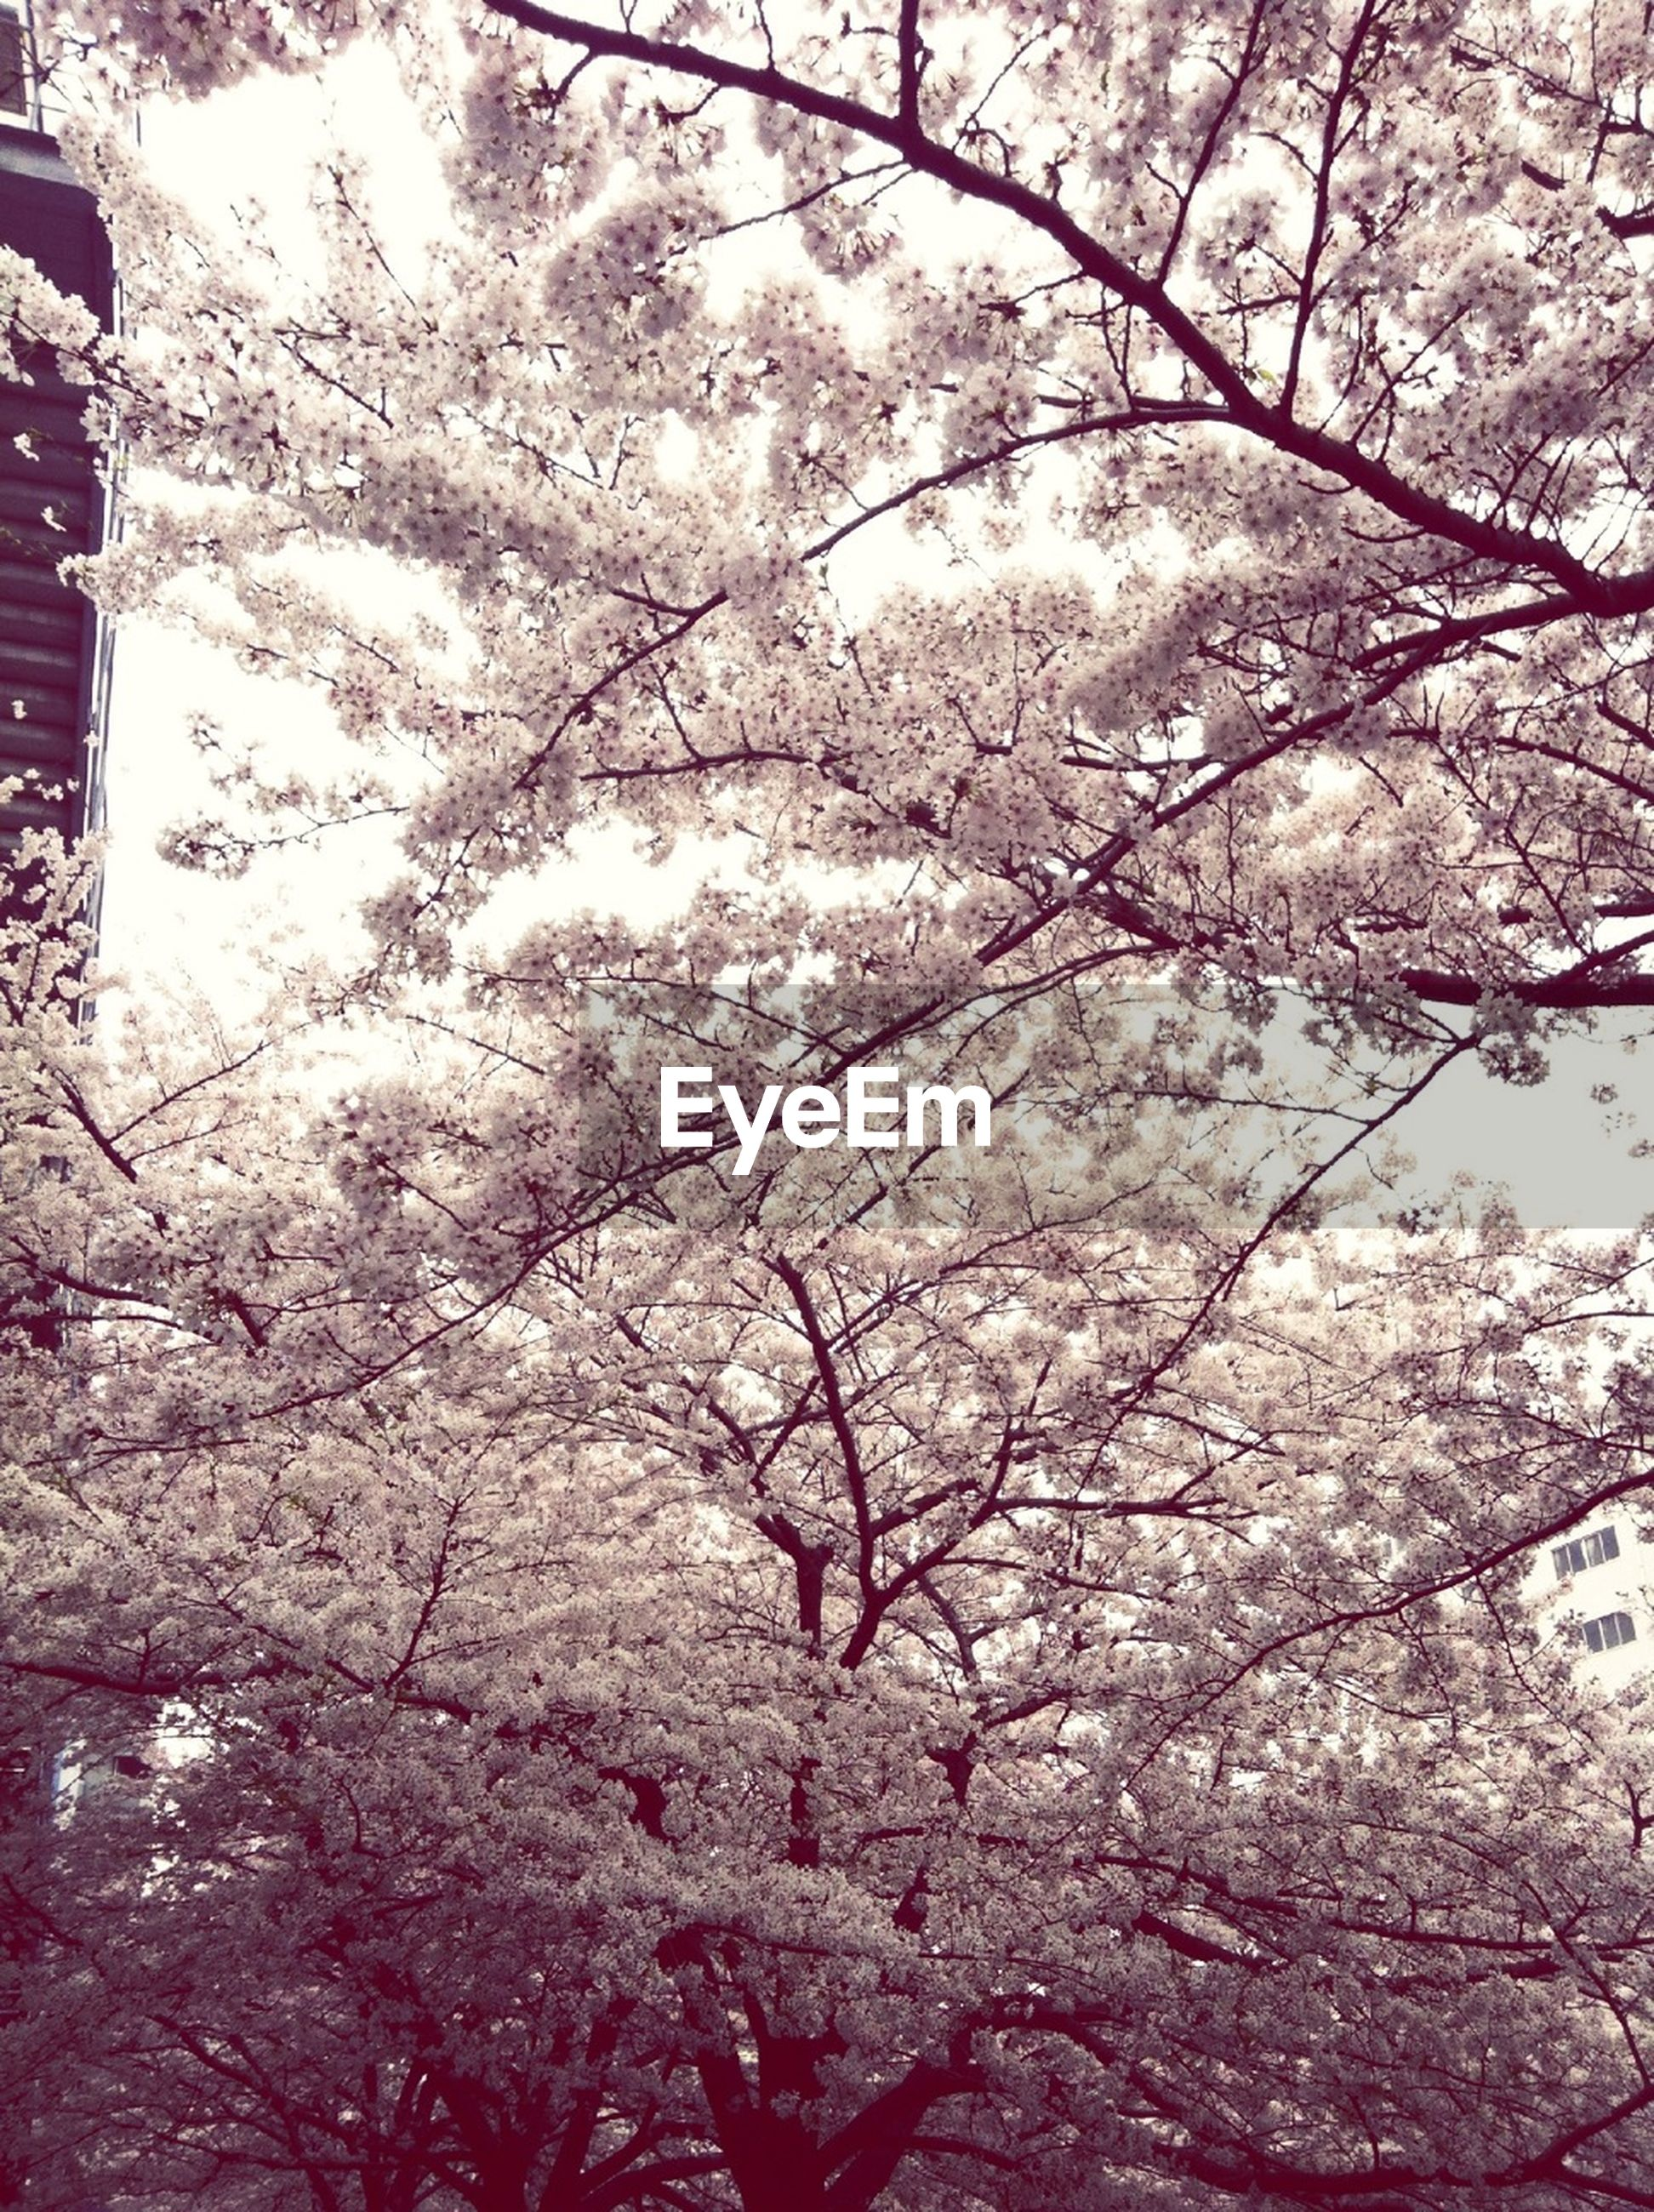 tree, branch, flower, cherry blossom, growth, freshness, beauty in nature, low angle view, cherry tree, blossom, pink color, nature, fragility, springtime, in bloom, fruit tree, season, day, sky, outdoors